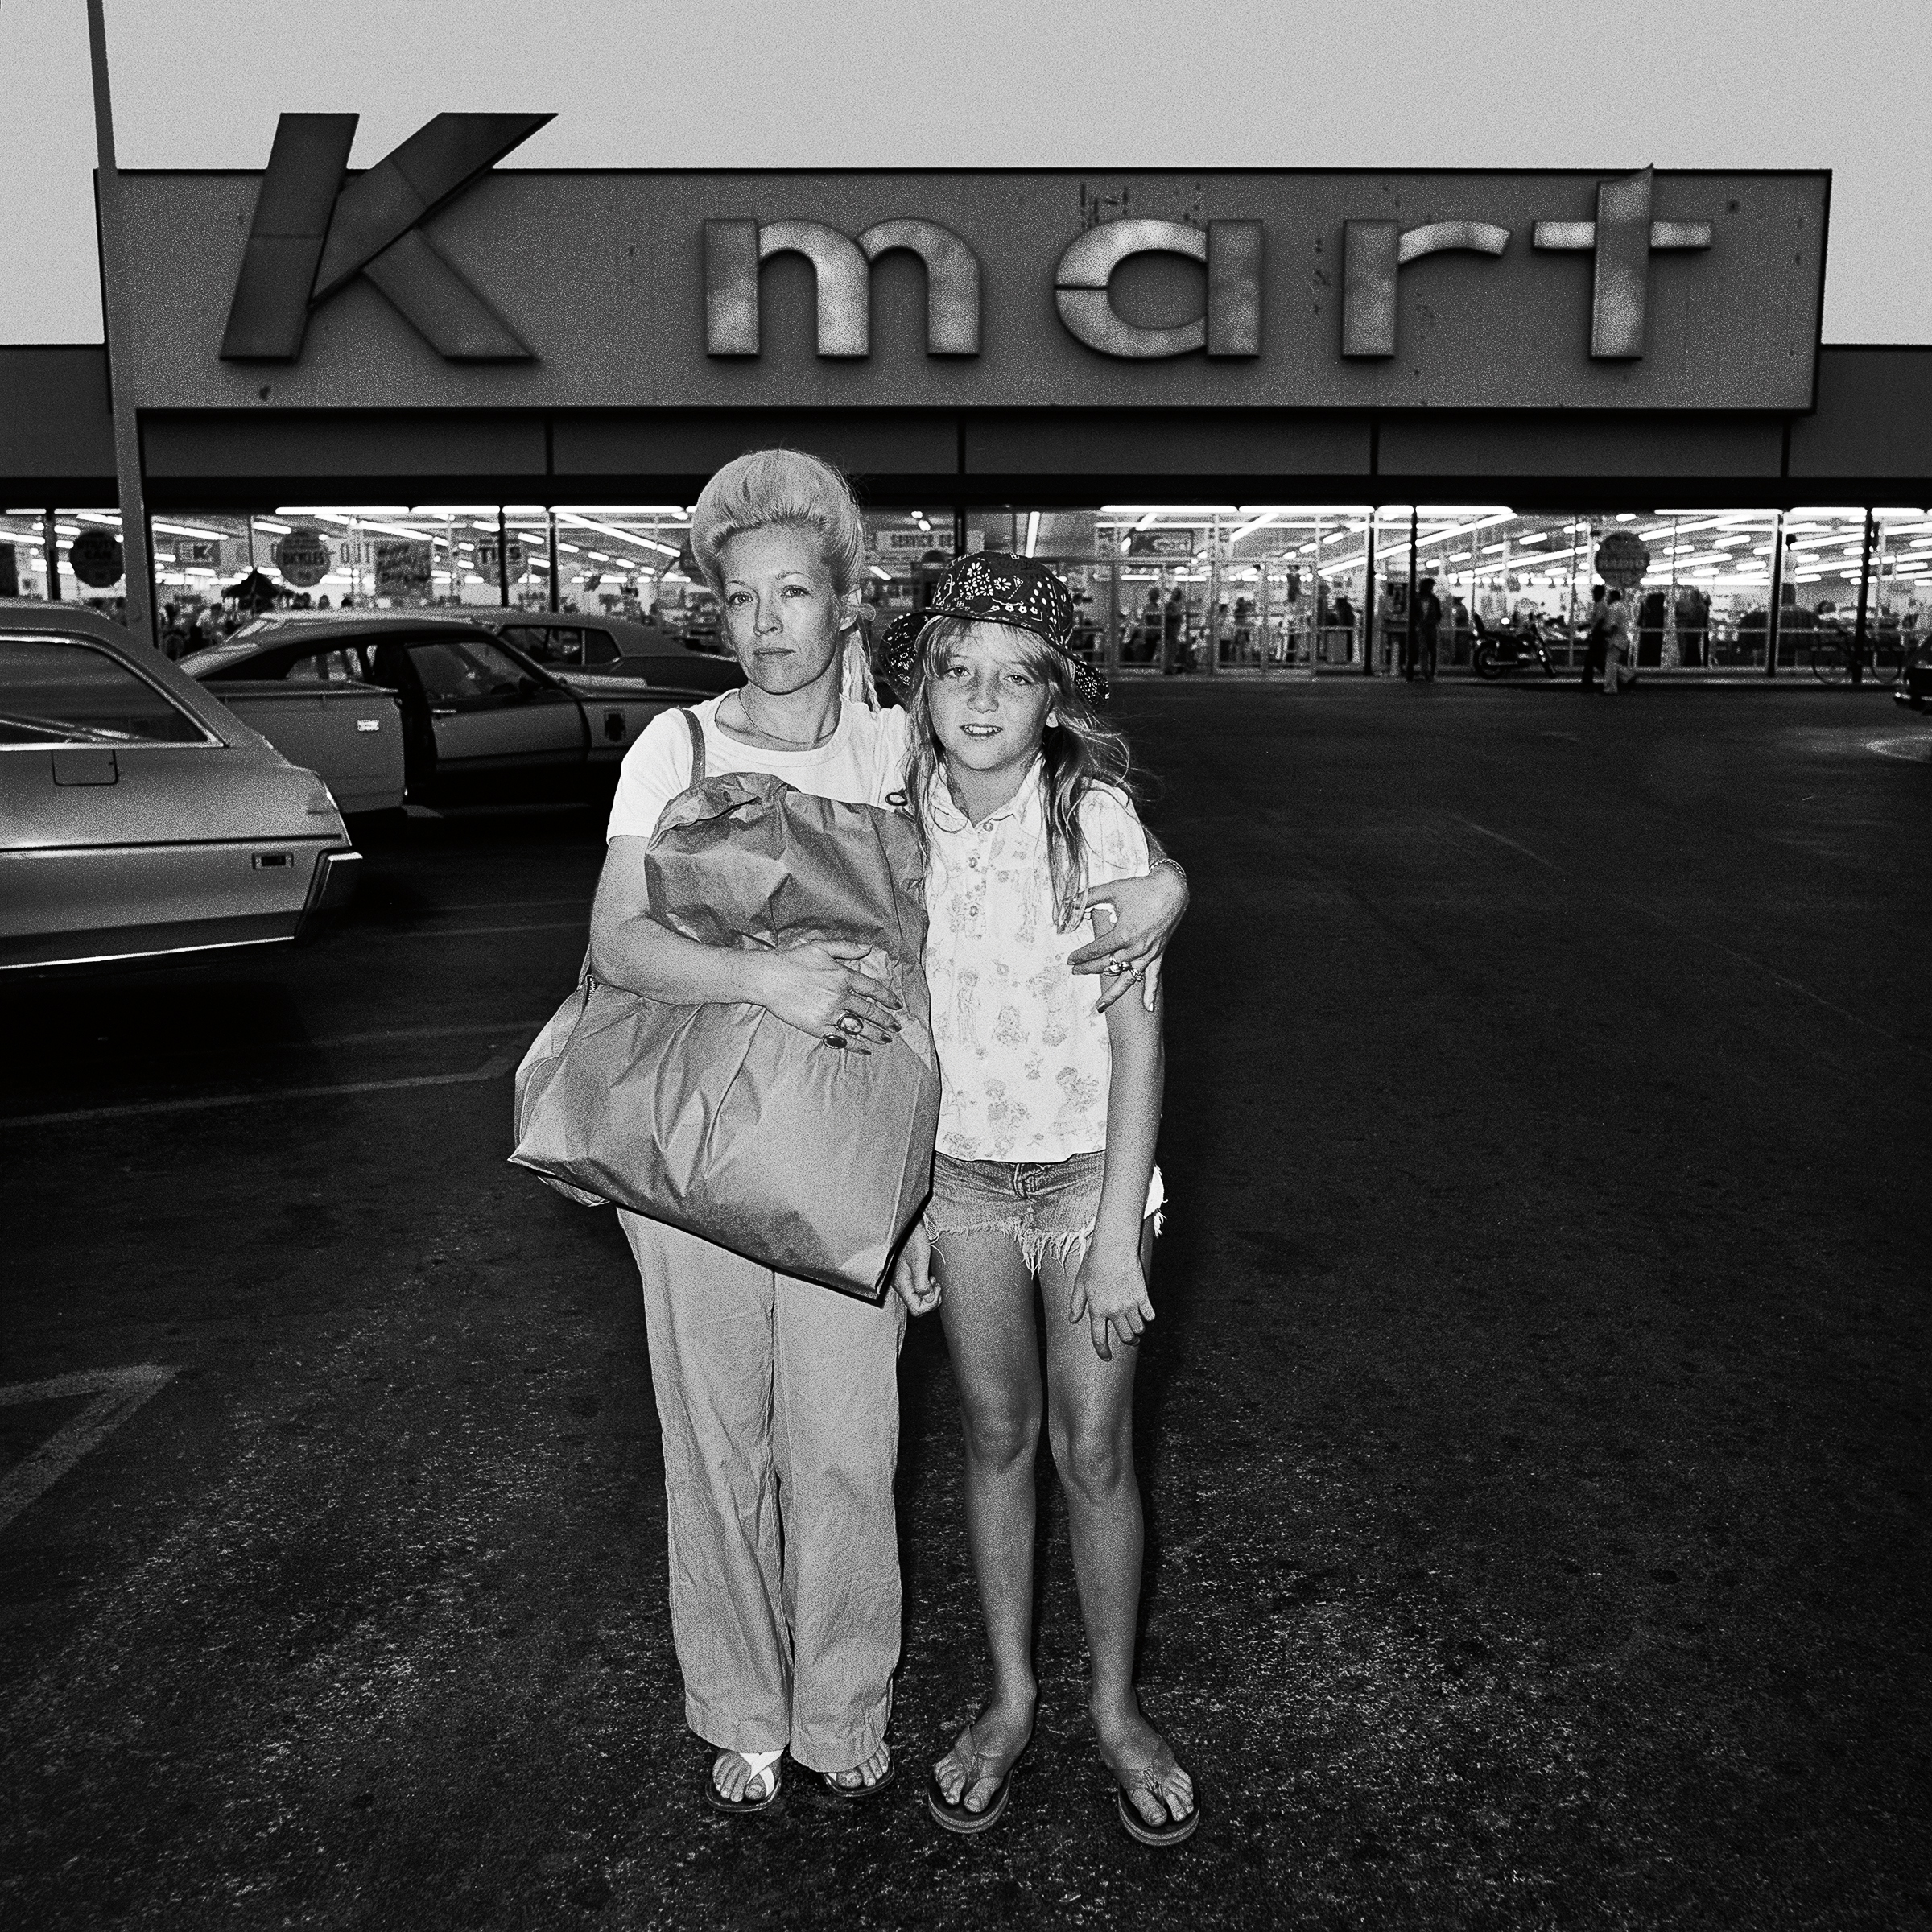 Mother & Daughter at Kmart, 1976